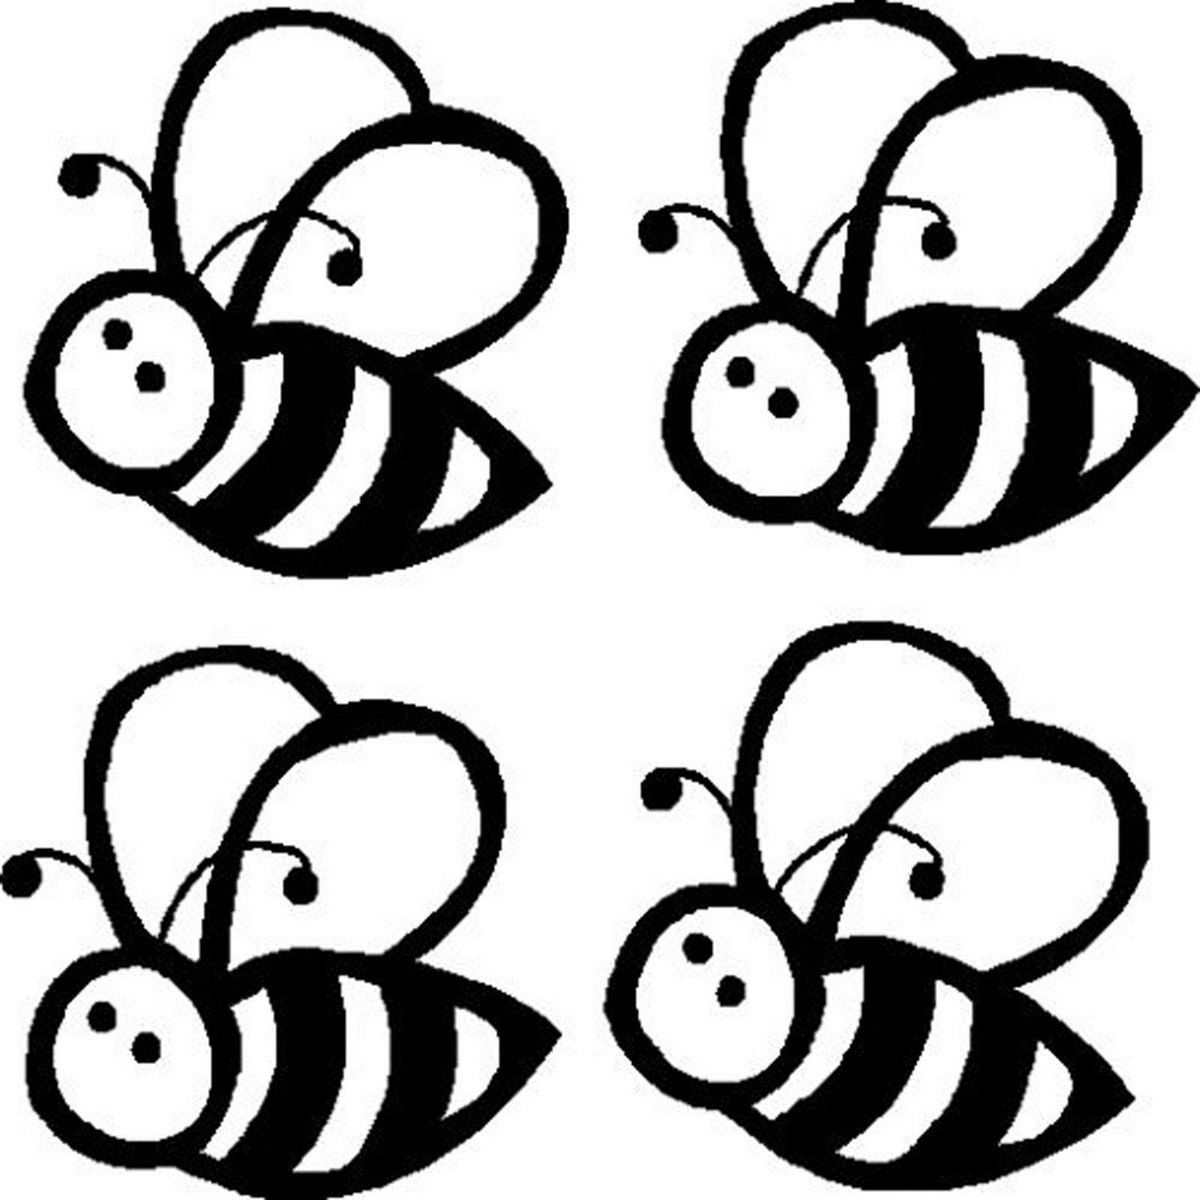 Four Buzzy Bee Vinyl Sticker Decal Car Window Wall Home Glass Door Auto Truck Laptop Bumper Decor Christmas Black 12.0cmX12.0cm ...